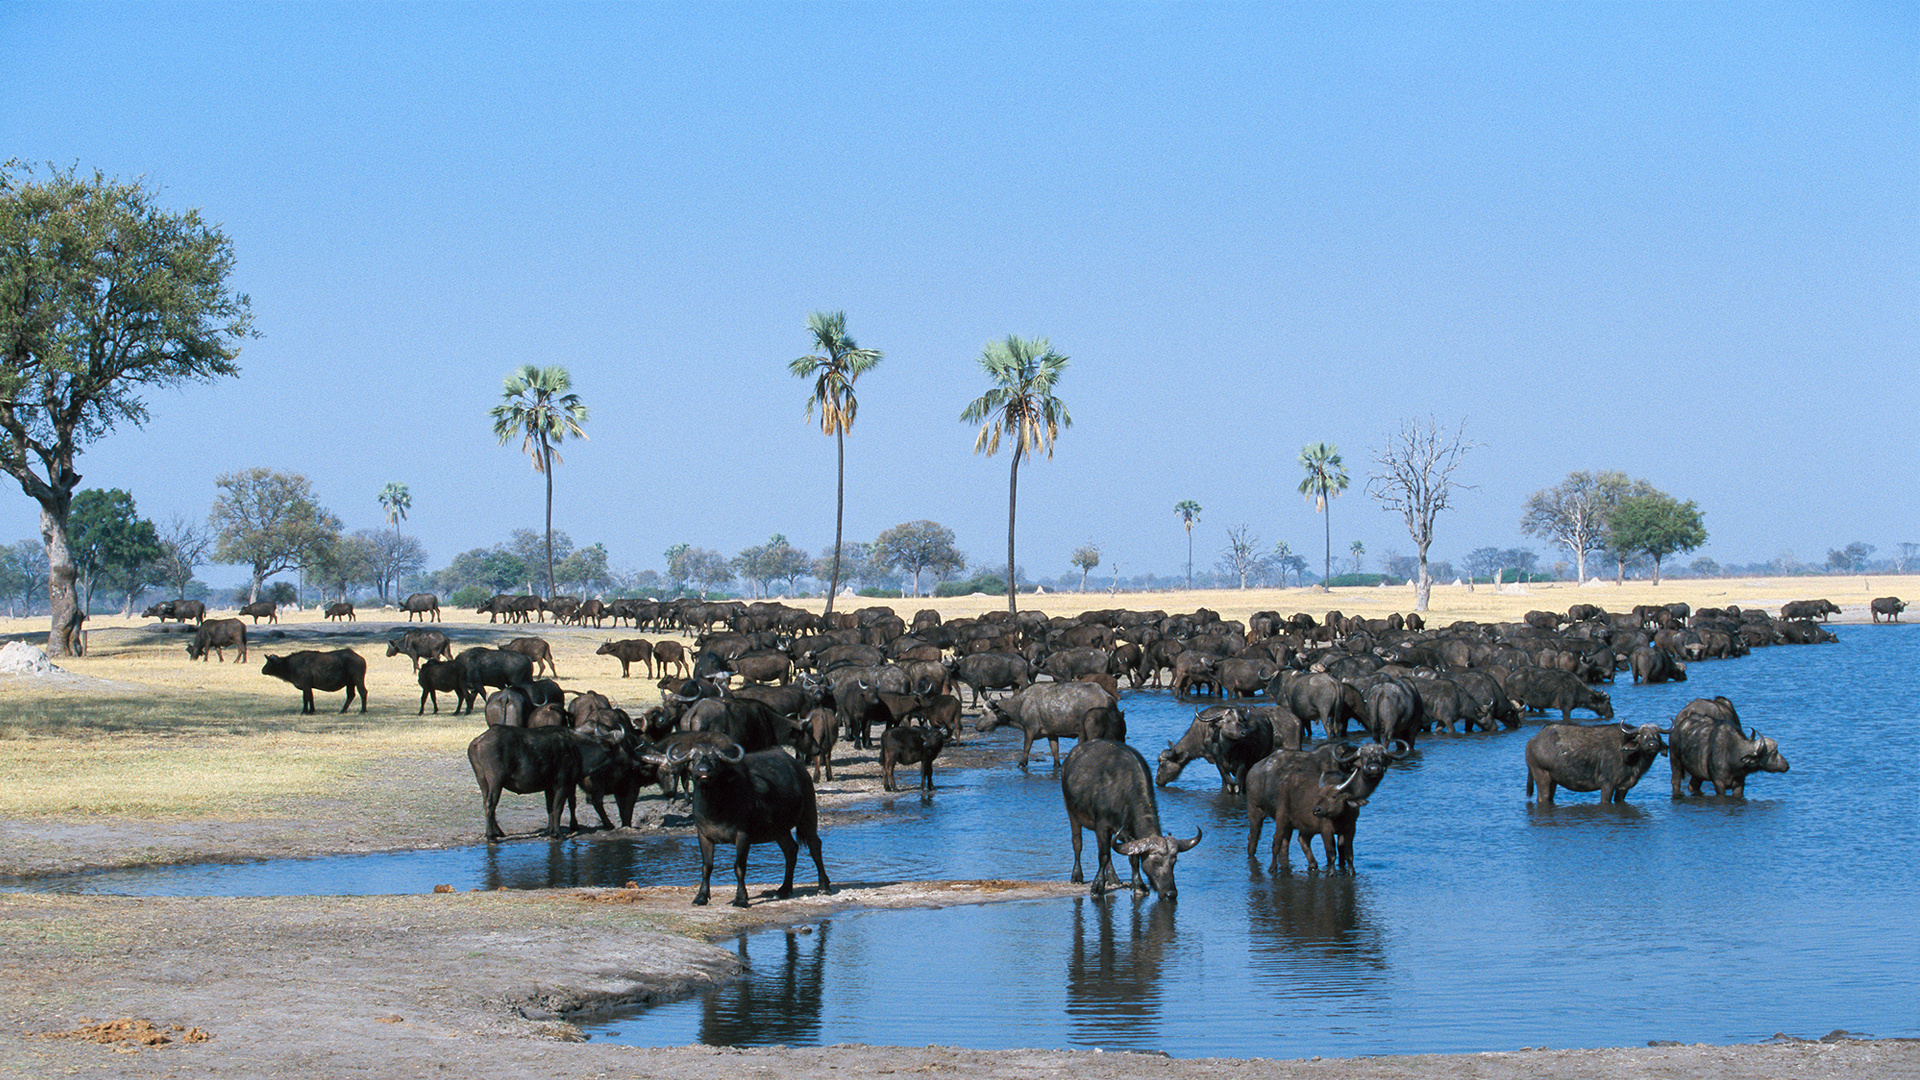 zimbabwe regions hwange national park buffalo herd in water